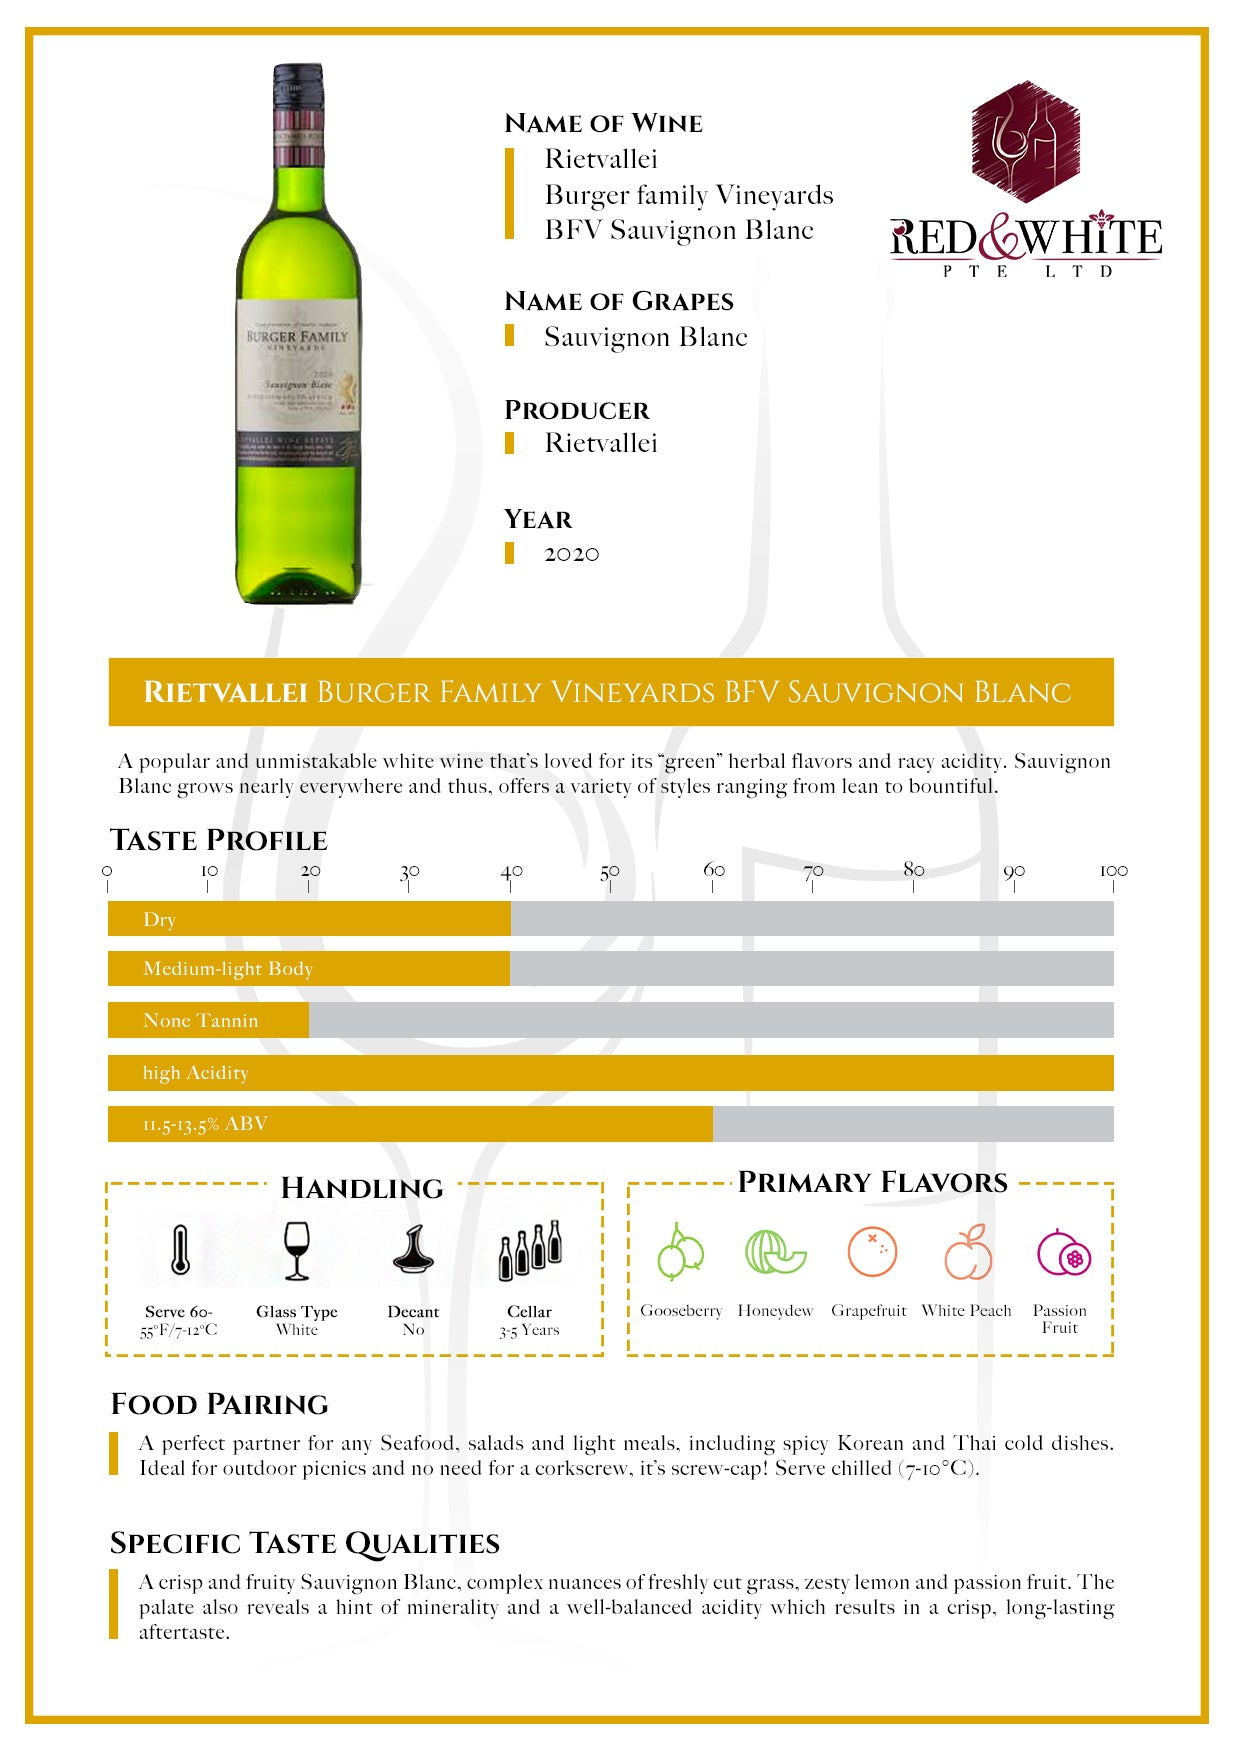 Rietvallei Burger Family Vineyards BFV Sauvignon Blanc 2020